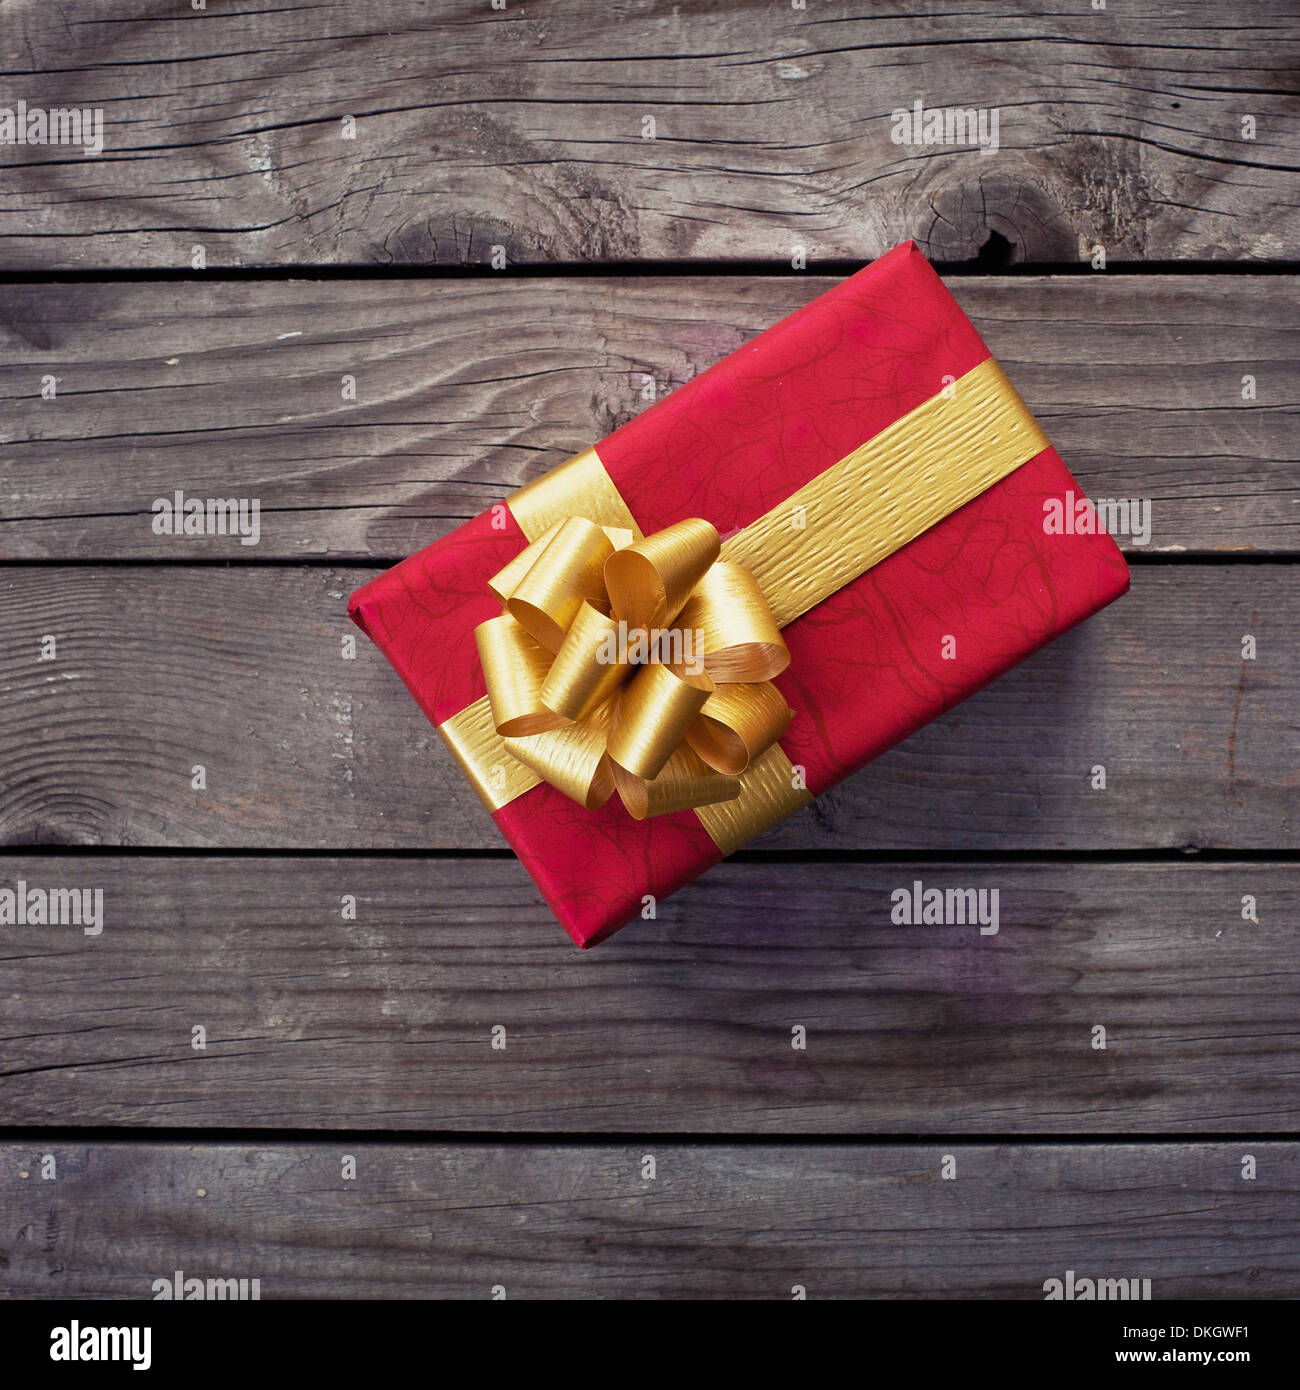 gift on wooden background - Stock Image